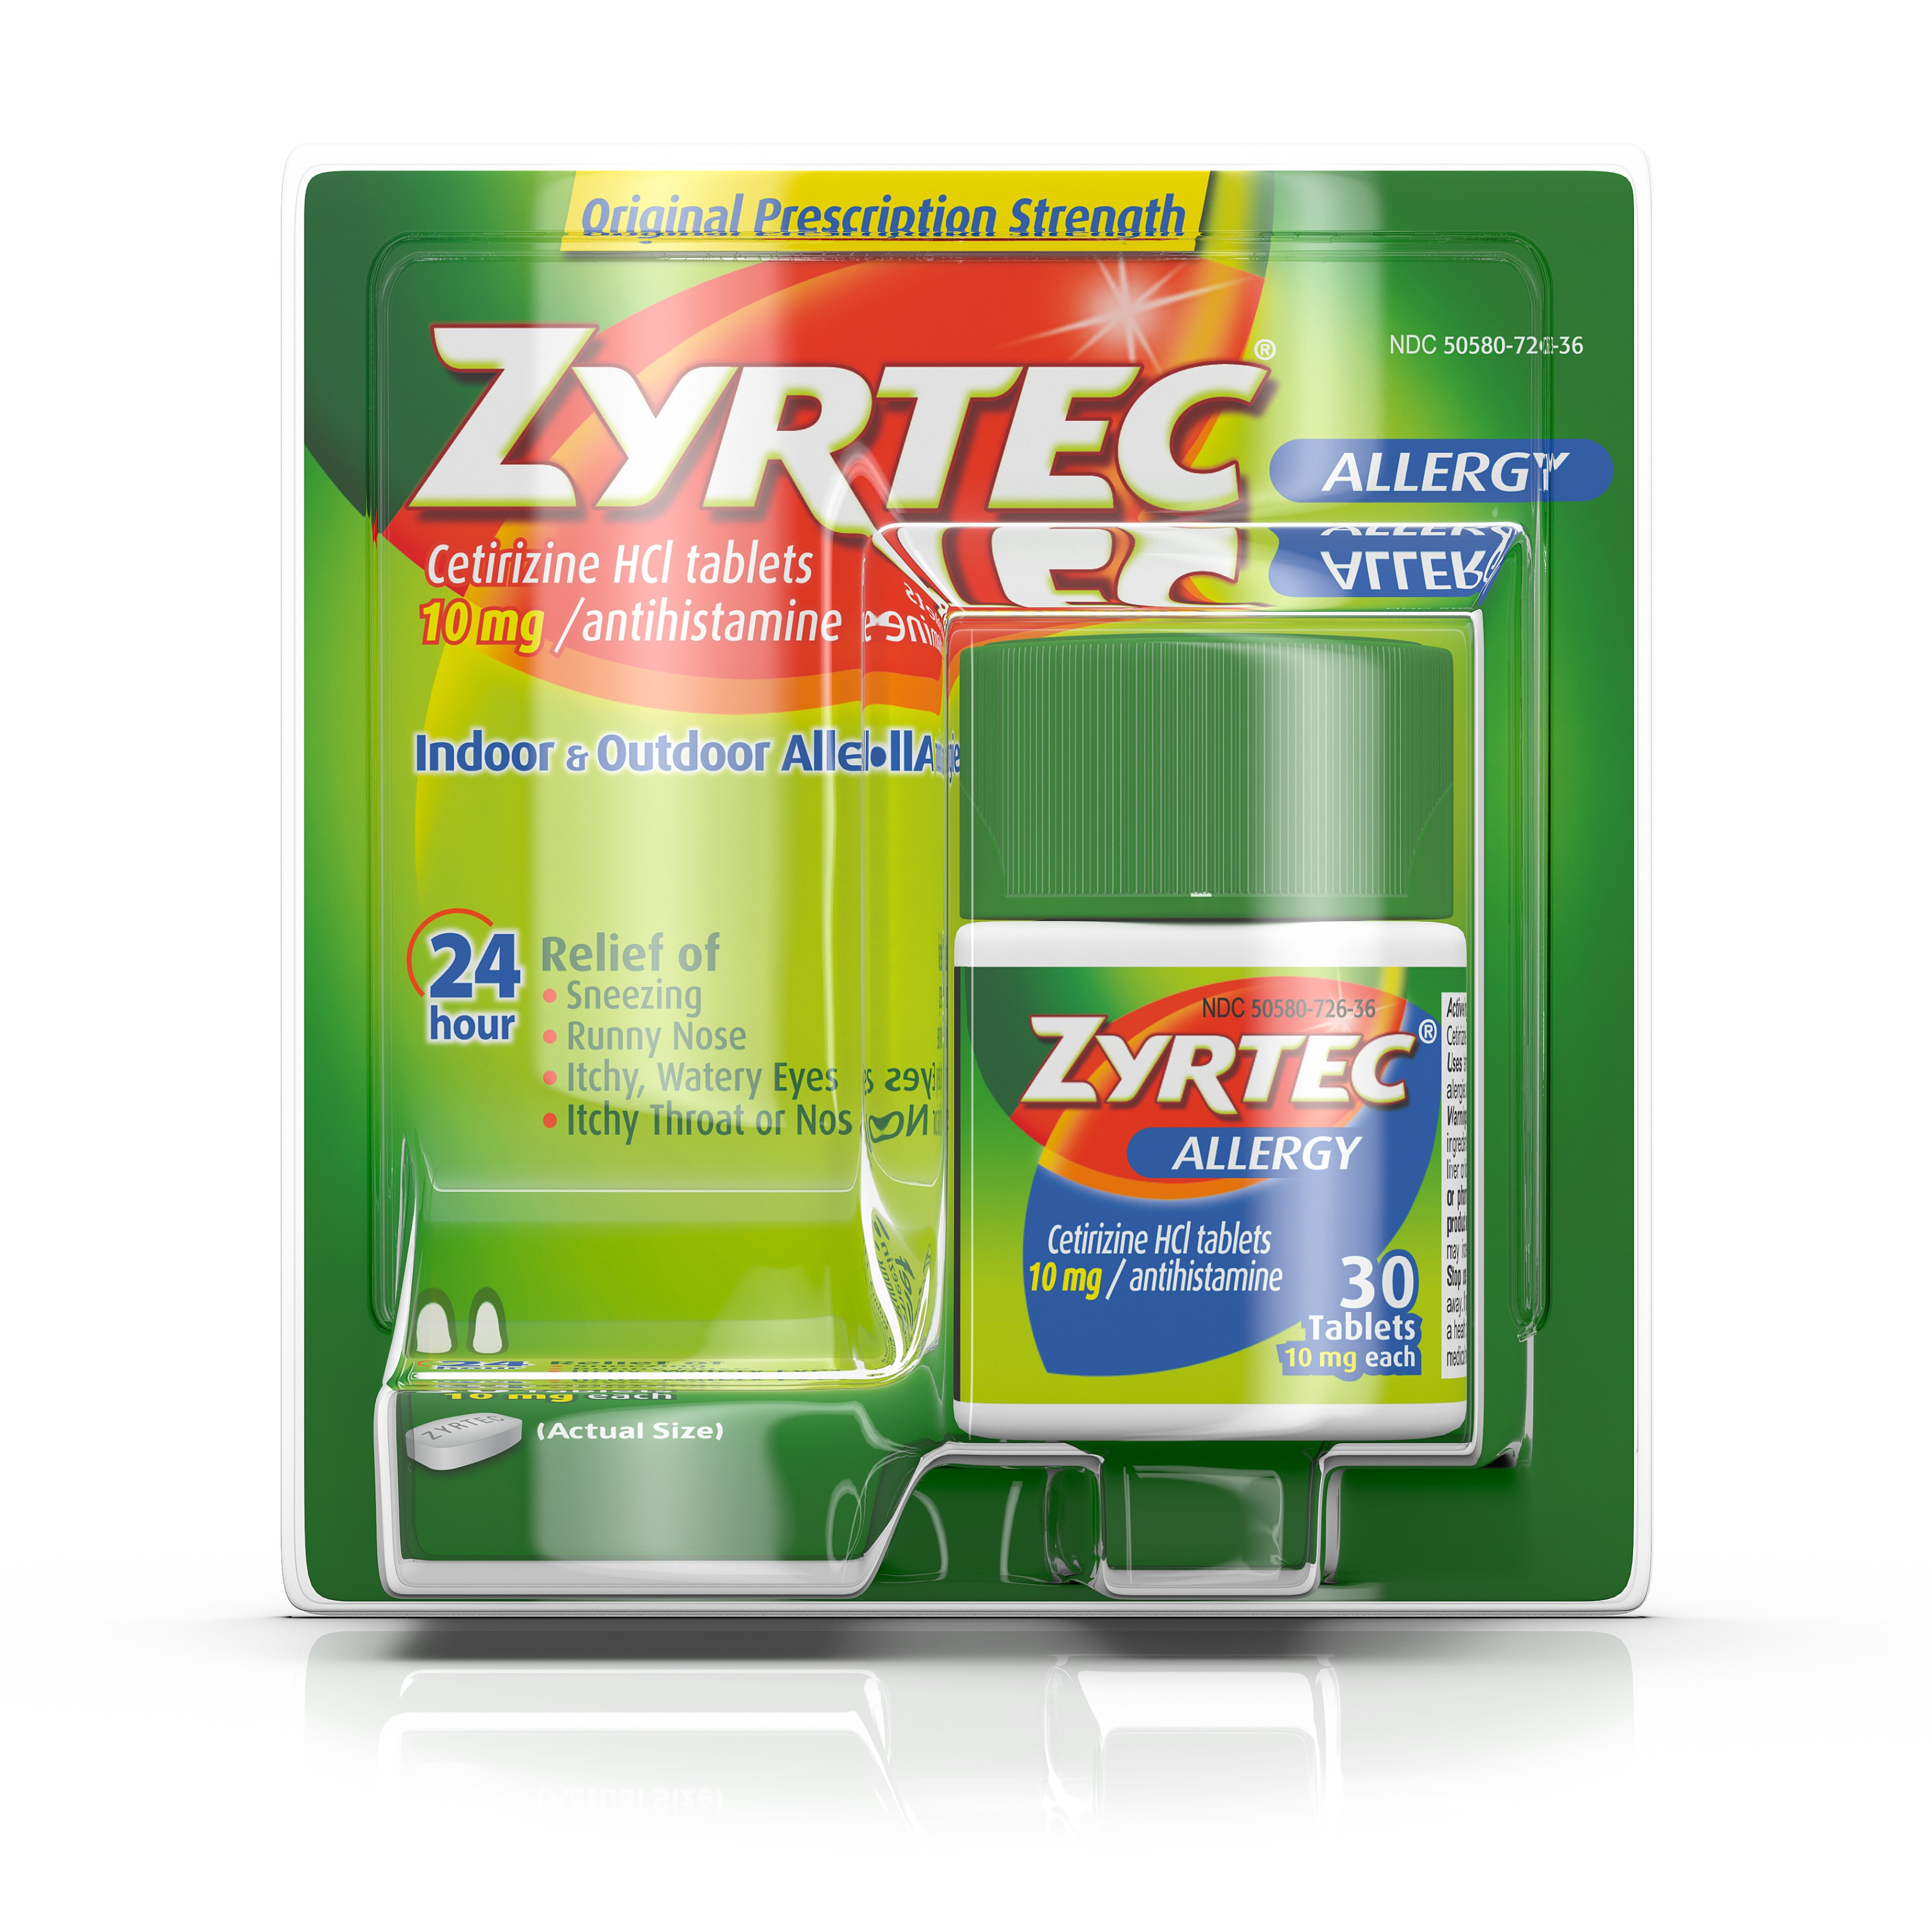 Zyrtec Prescription-Strength Allergy Medicine Tablets With Cetirizine, 30 Count, 10 mg - Walmart.com | Tuggl